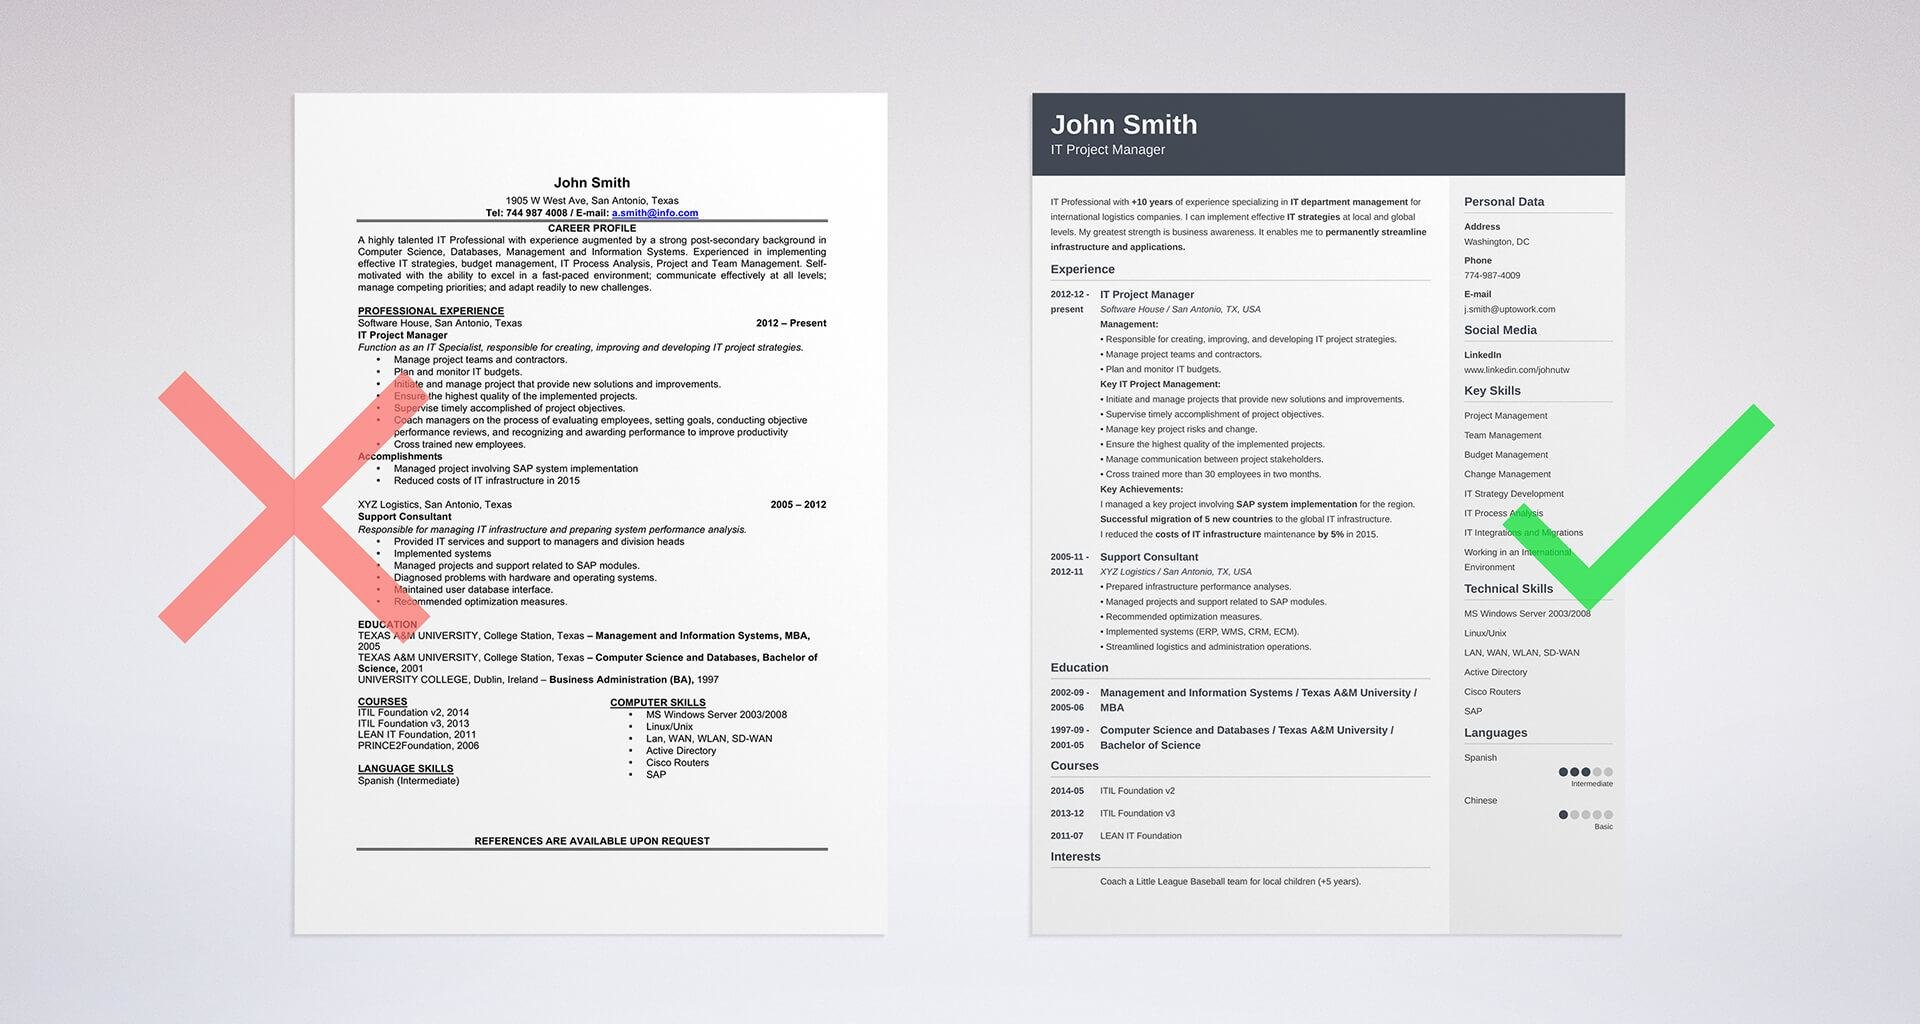 How To Put Your Education On A Resume Tips & Examples